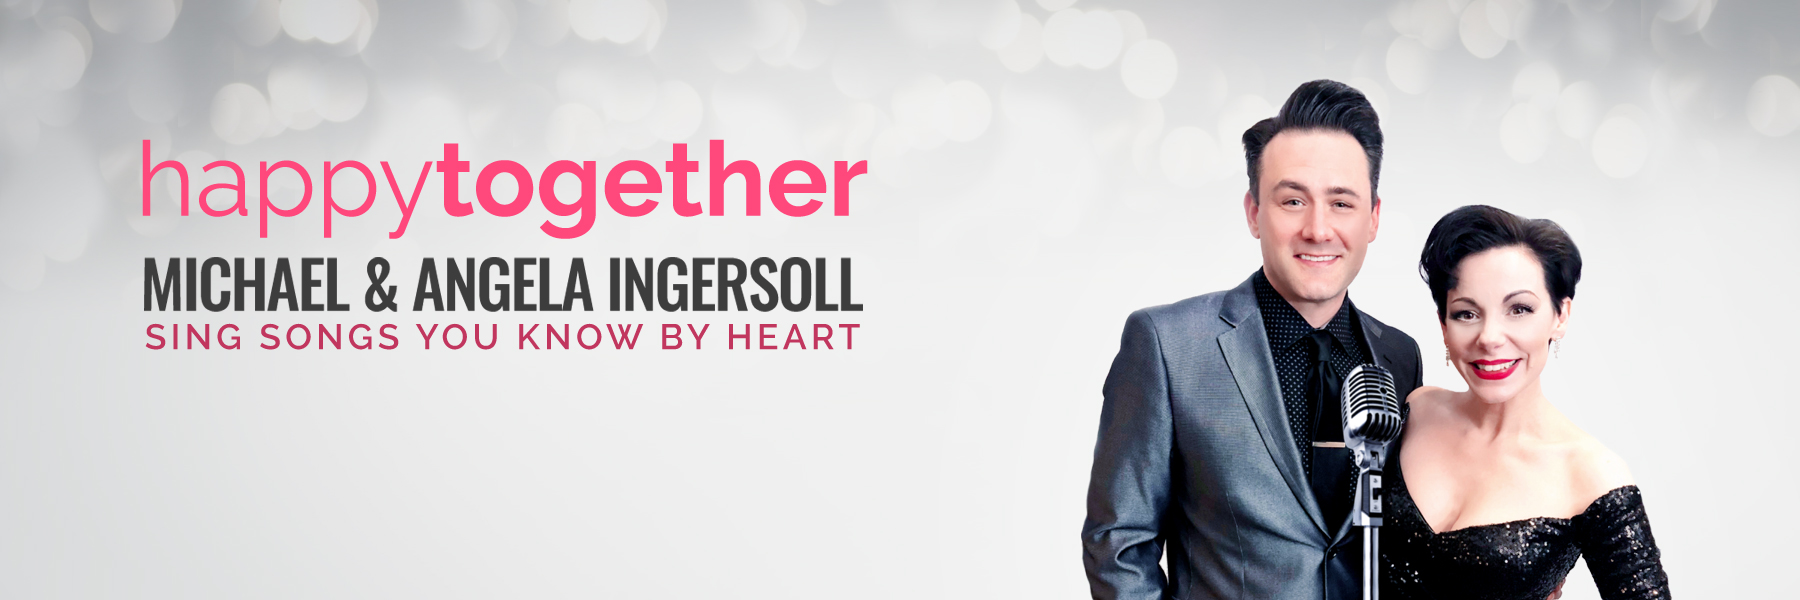 Happy Together: Michael & Angela Ingersoll Sing Songs You Know By Heart